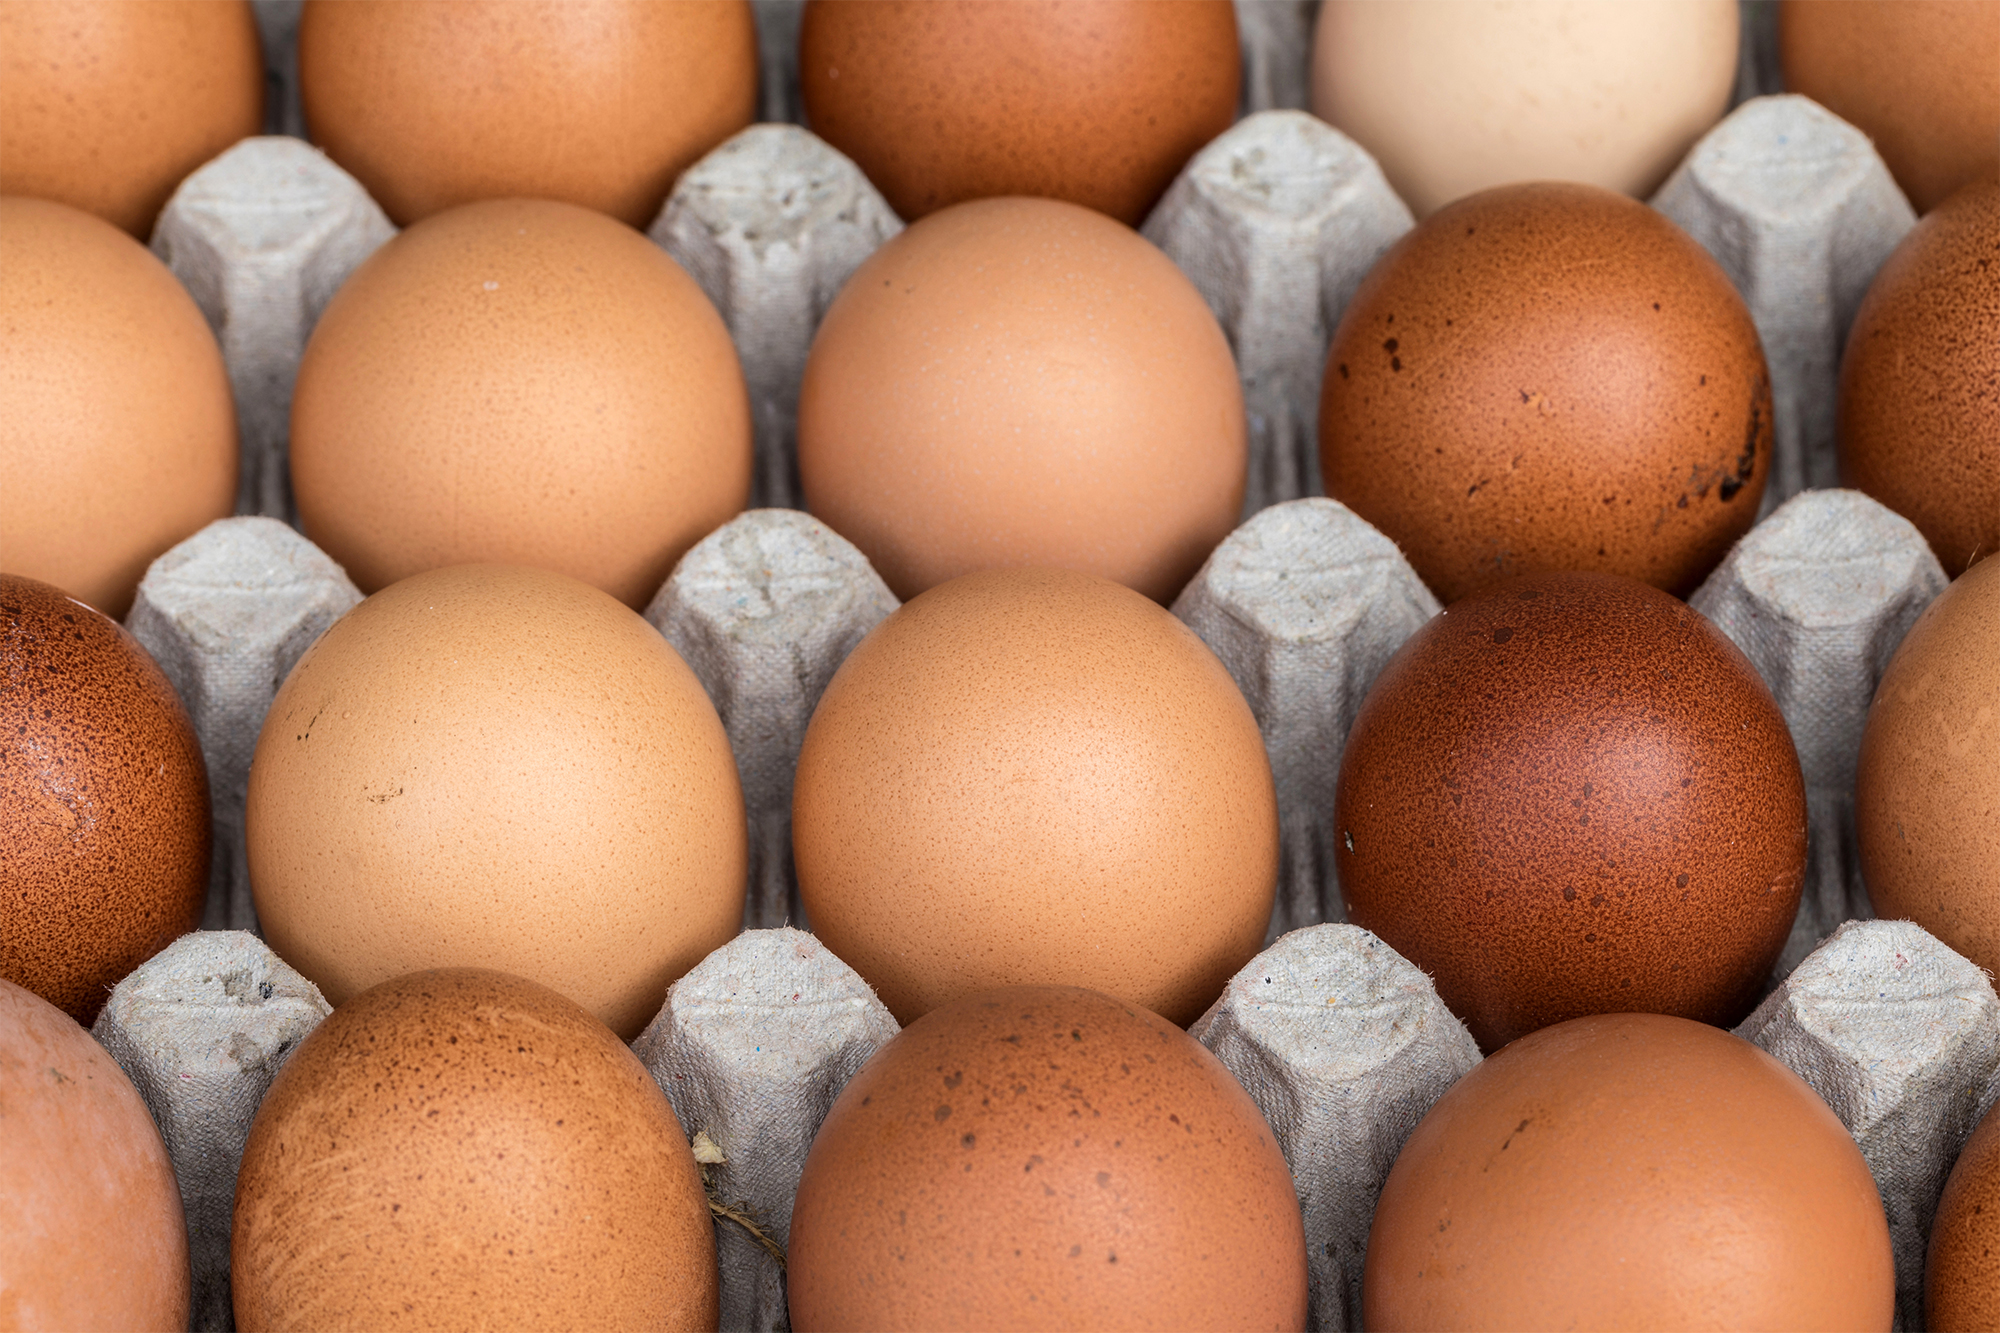 Chicken eggs pallet from the farm